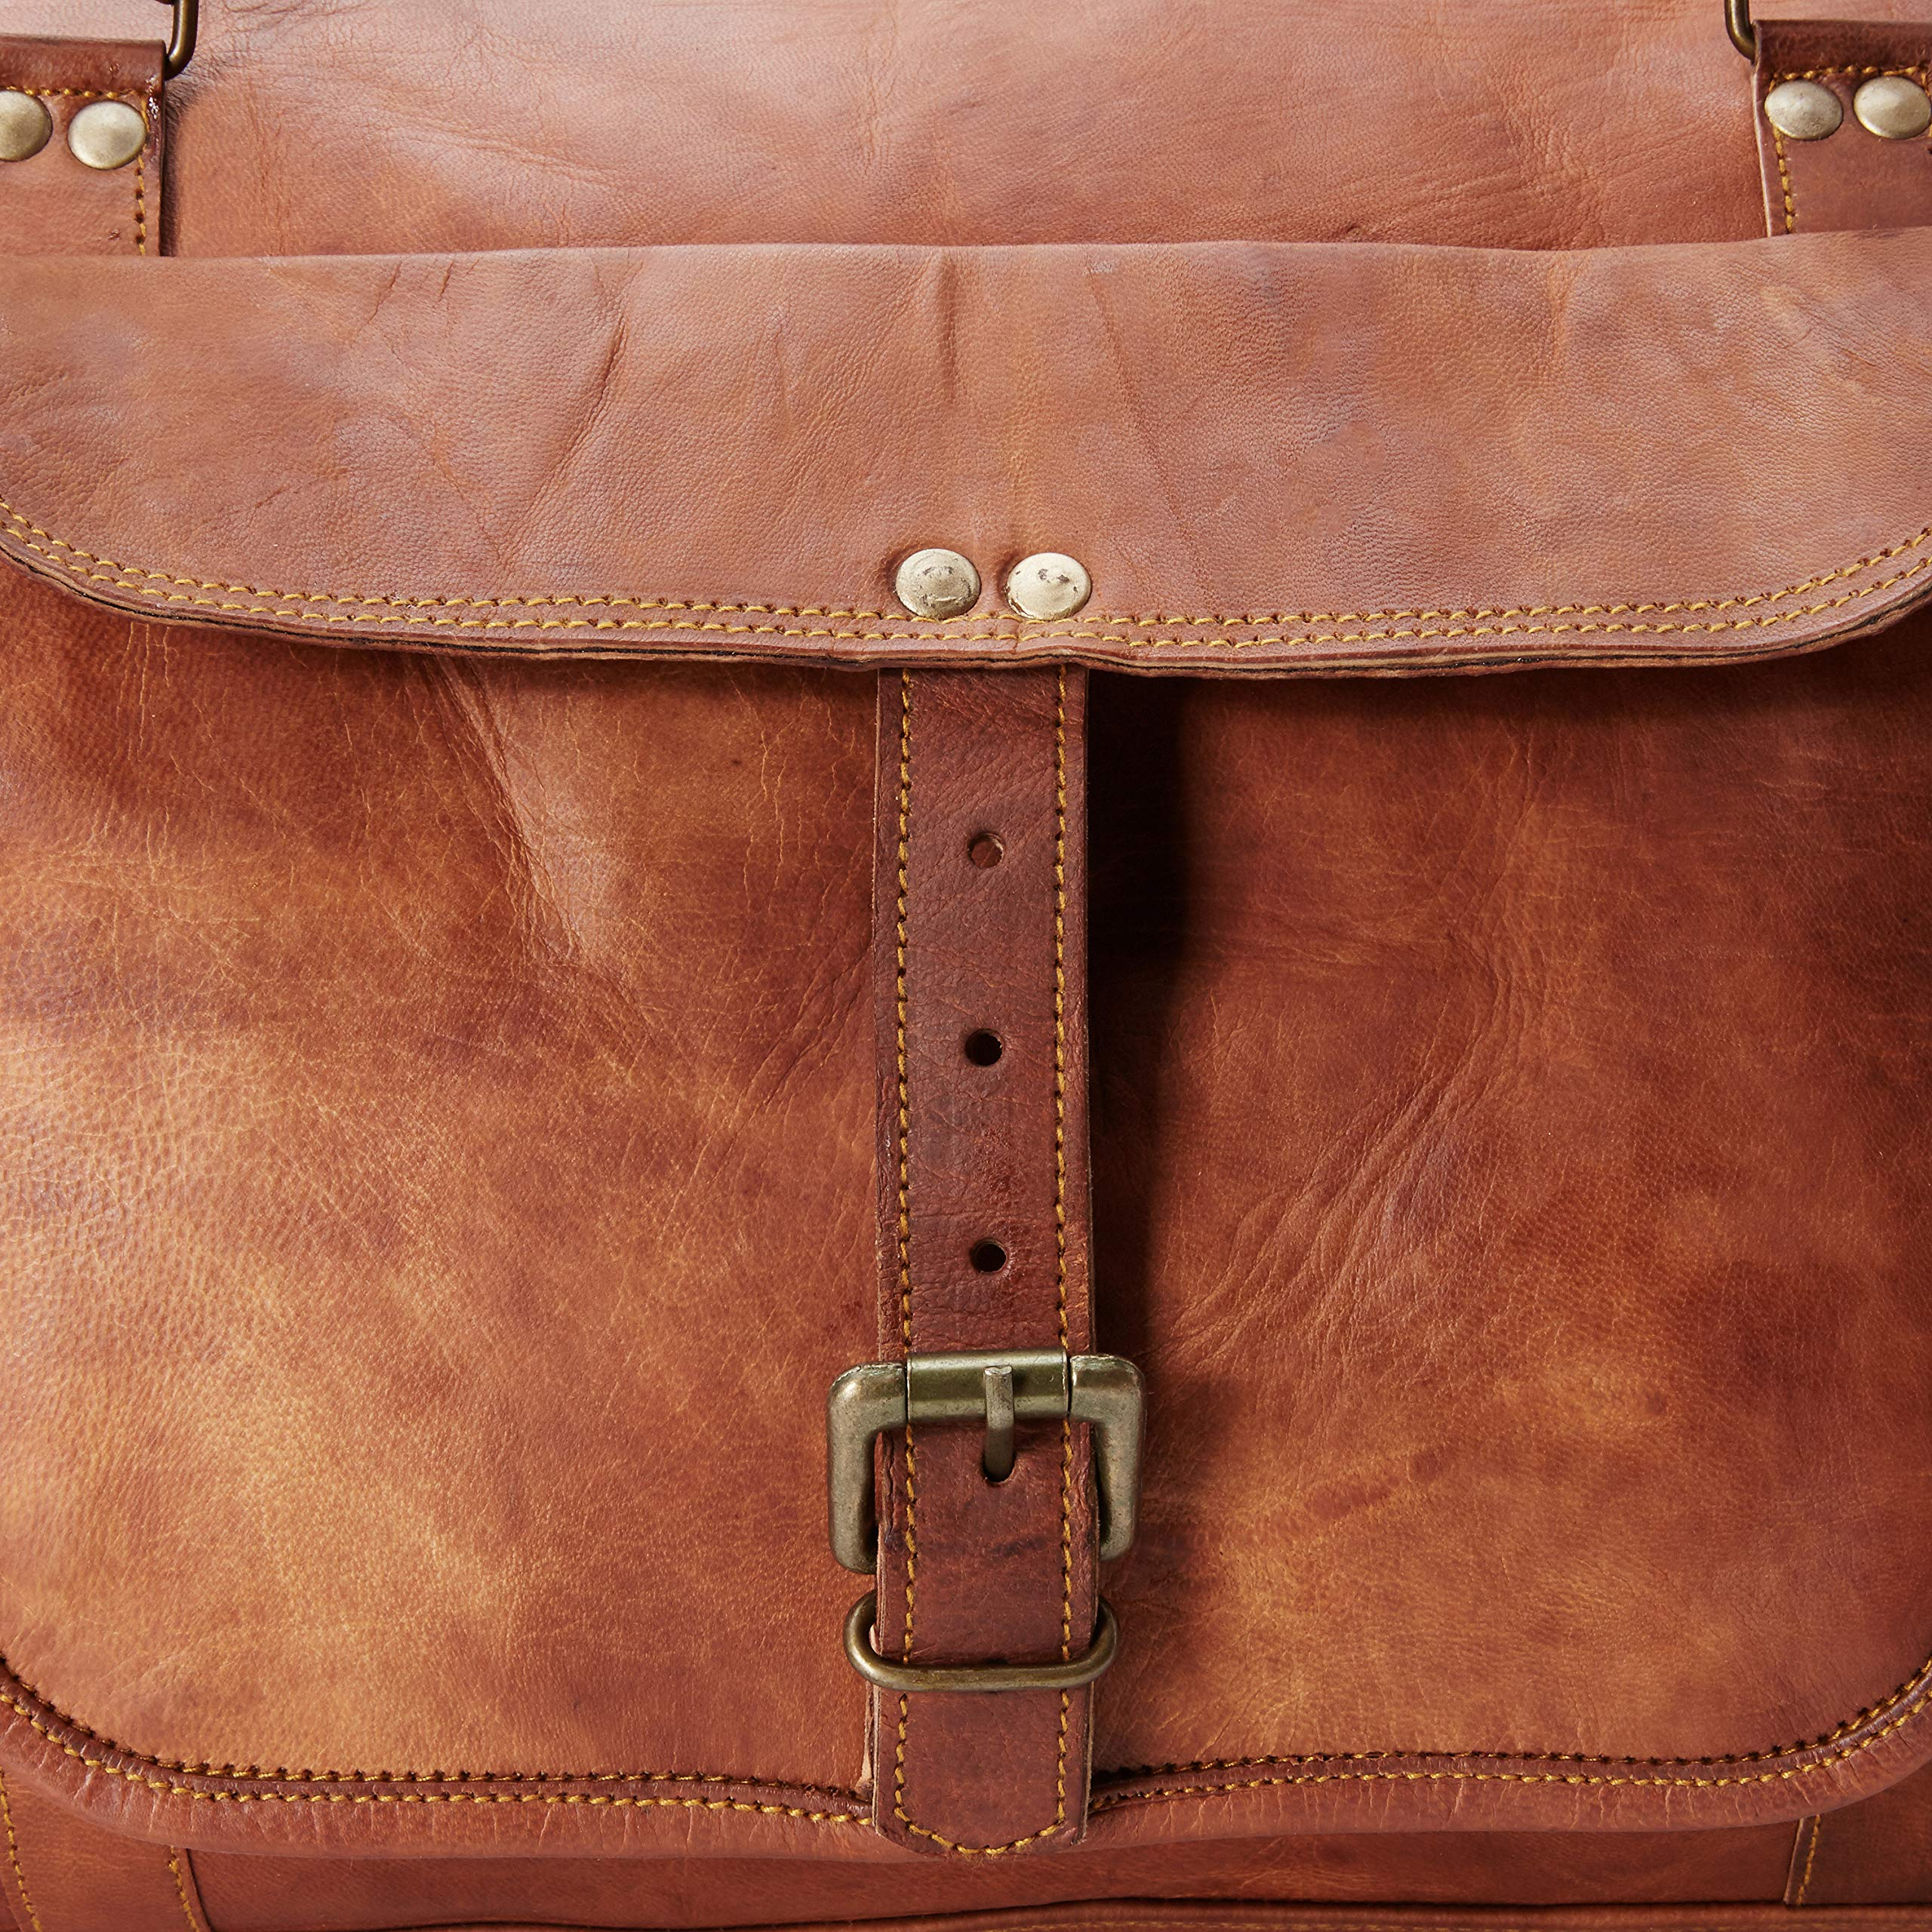 Leather 24 Inch Square Duffel Travel Gym Sports Overnight Weekend Leather Bag by Ruzioon (Image #3)